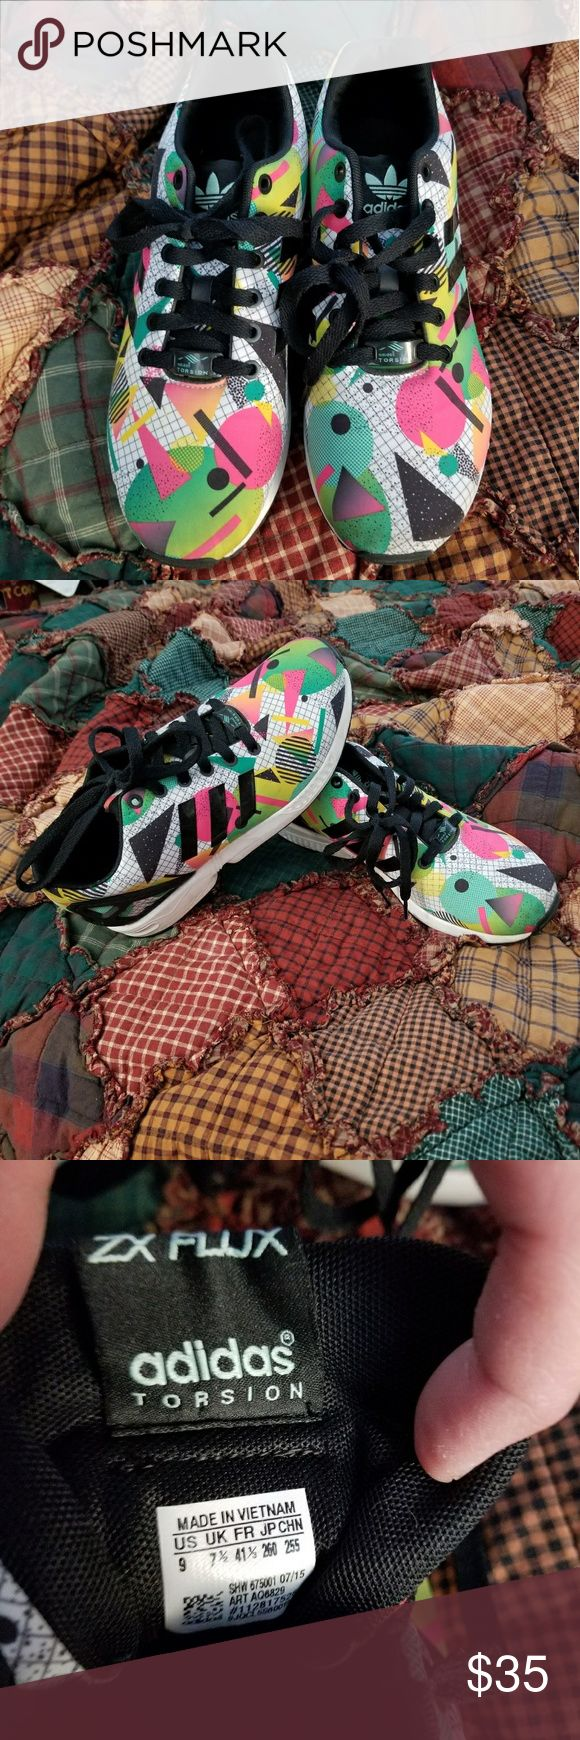 Adidas geometric colorful shoes women's size 9 Adidas Geometric  shapes colorful women's shoes size 9. Super awesome looking! Gently used adidas Shoes Athletic Shoes